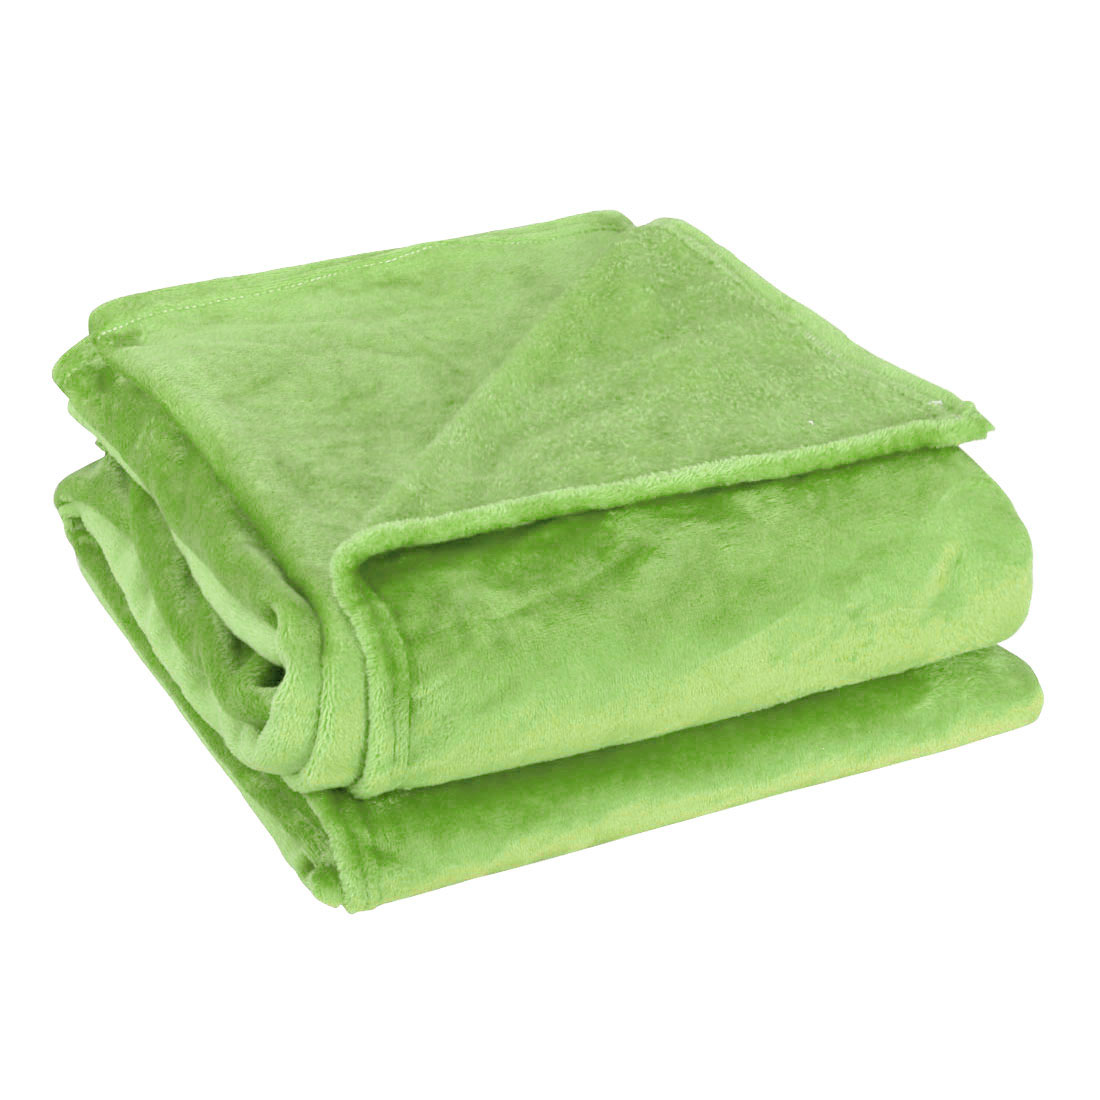 Full Size Home Bedroom Bed Sofa Warm Plush Fleece Couch Throws Blanket Soft Lime Green 180*200cm